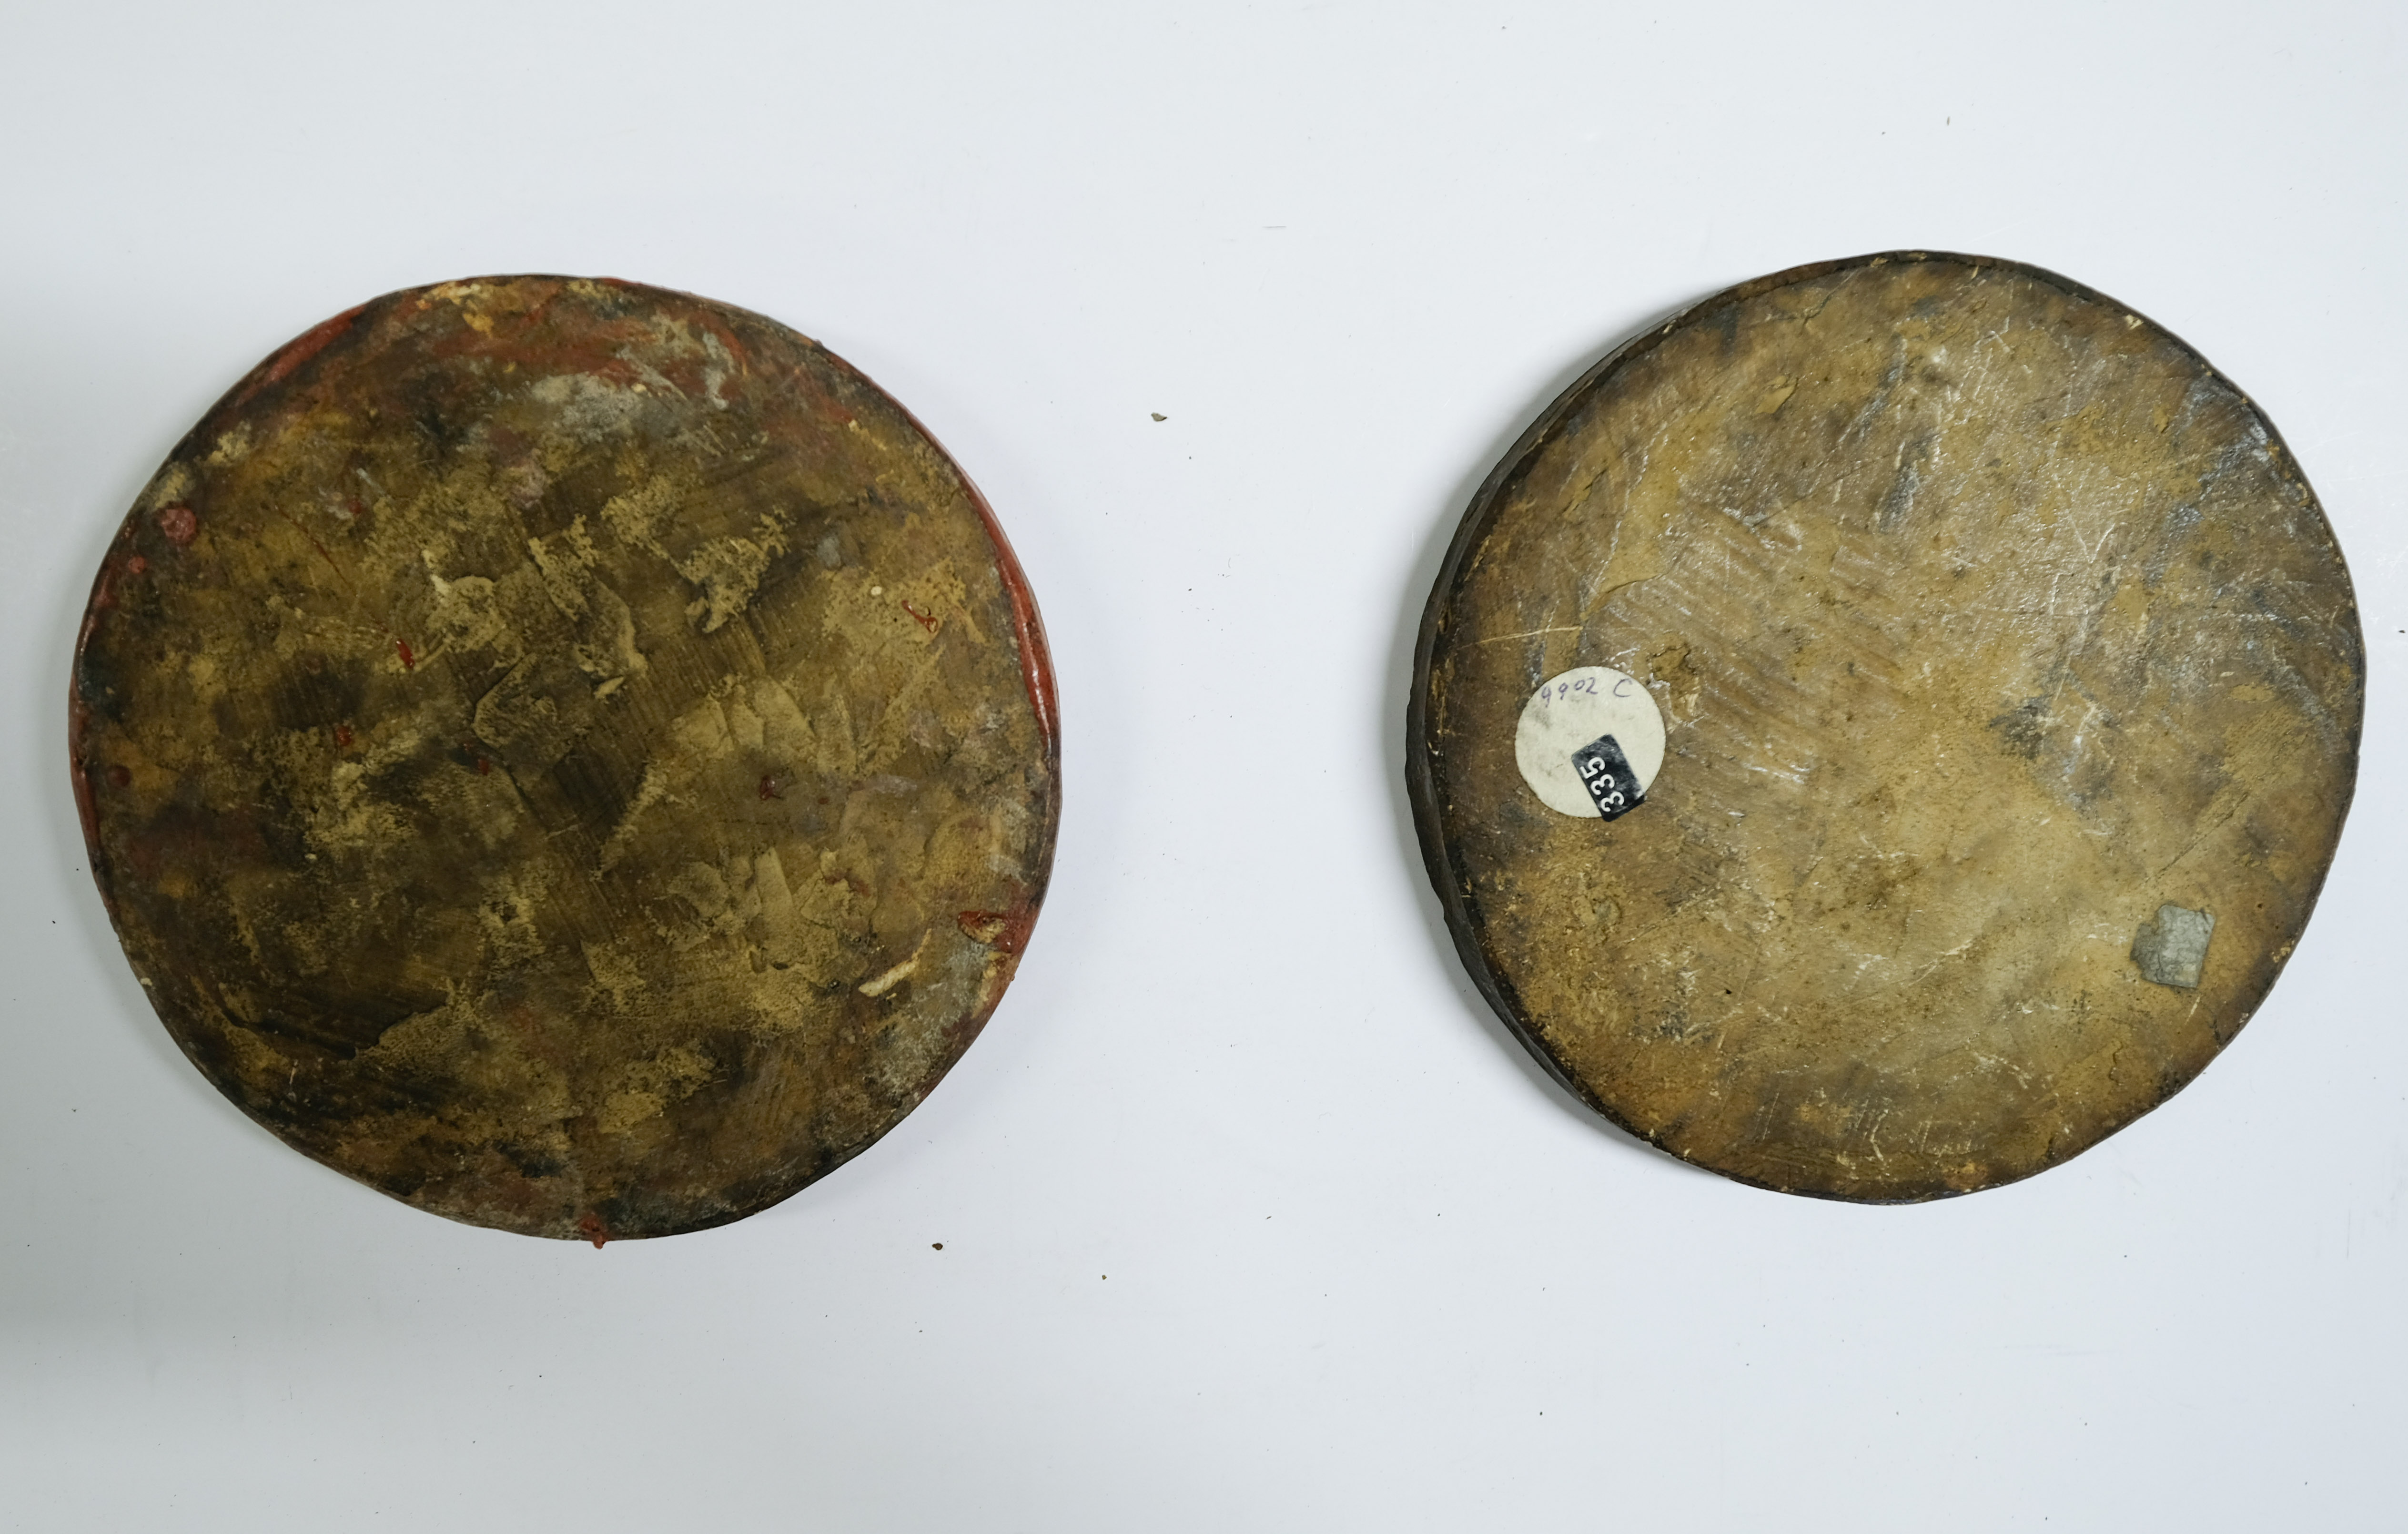 * Great Seal moulds. Plaster cast moulds of the Great Seal of George III, (reign 1760-1820) - Image 4 of 4